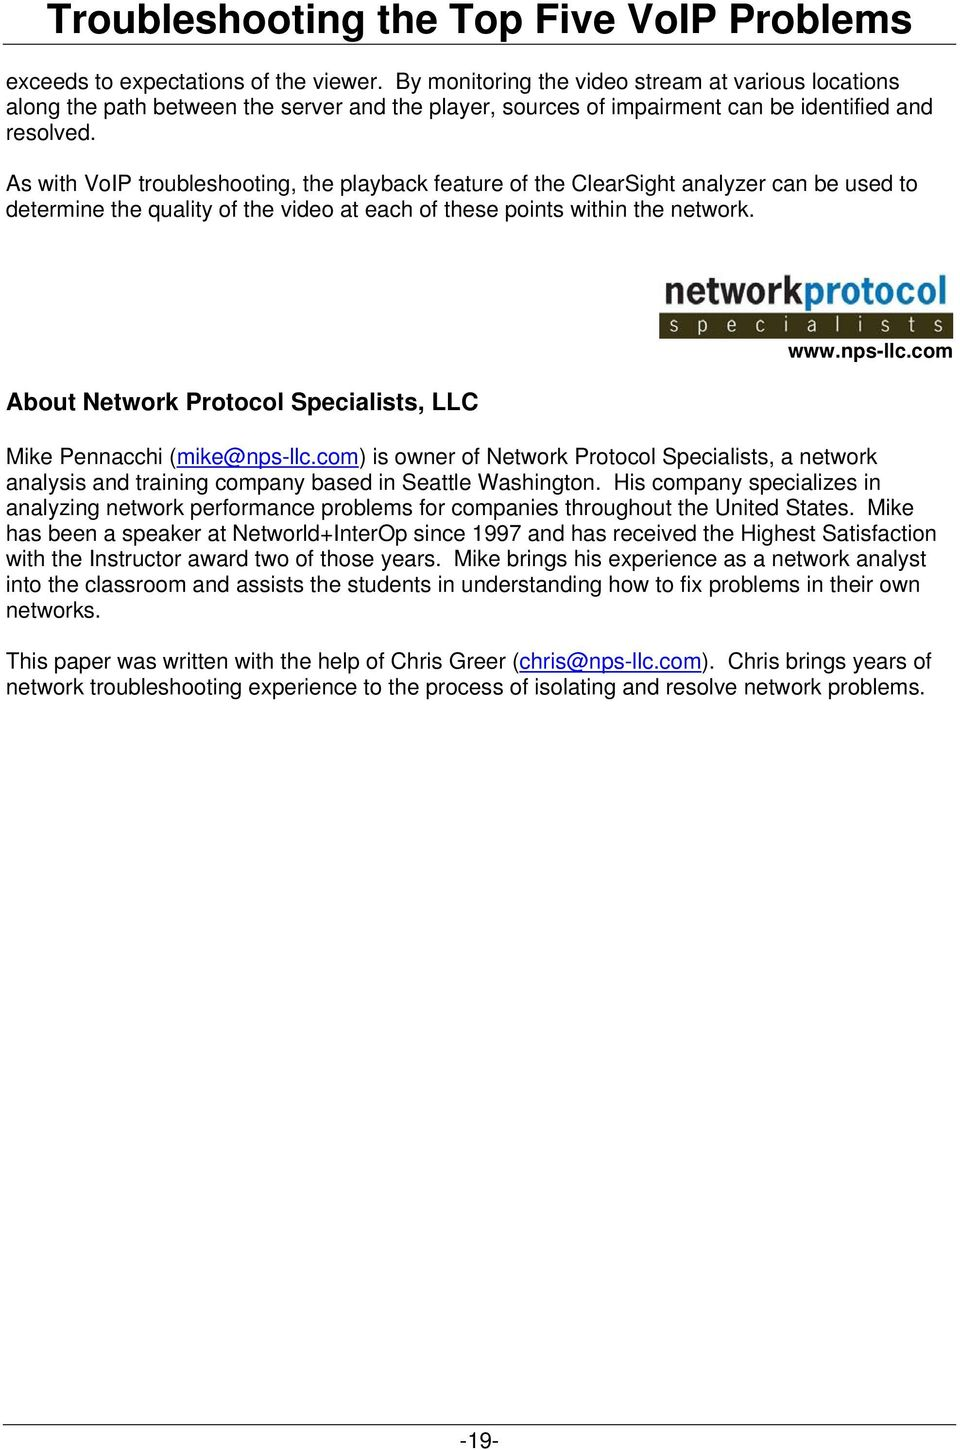 About Network Protocol Specialists, LLC www.nps-llc.com Mike Pennacchi (mike@nps-llc.com) is owner of Network Protocol Specialists, a network analysis and training company based in Seattle Washington.